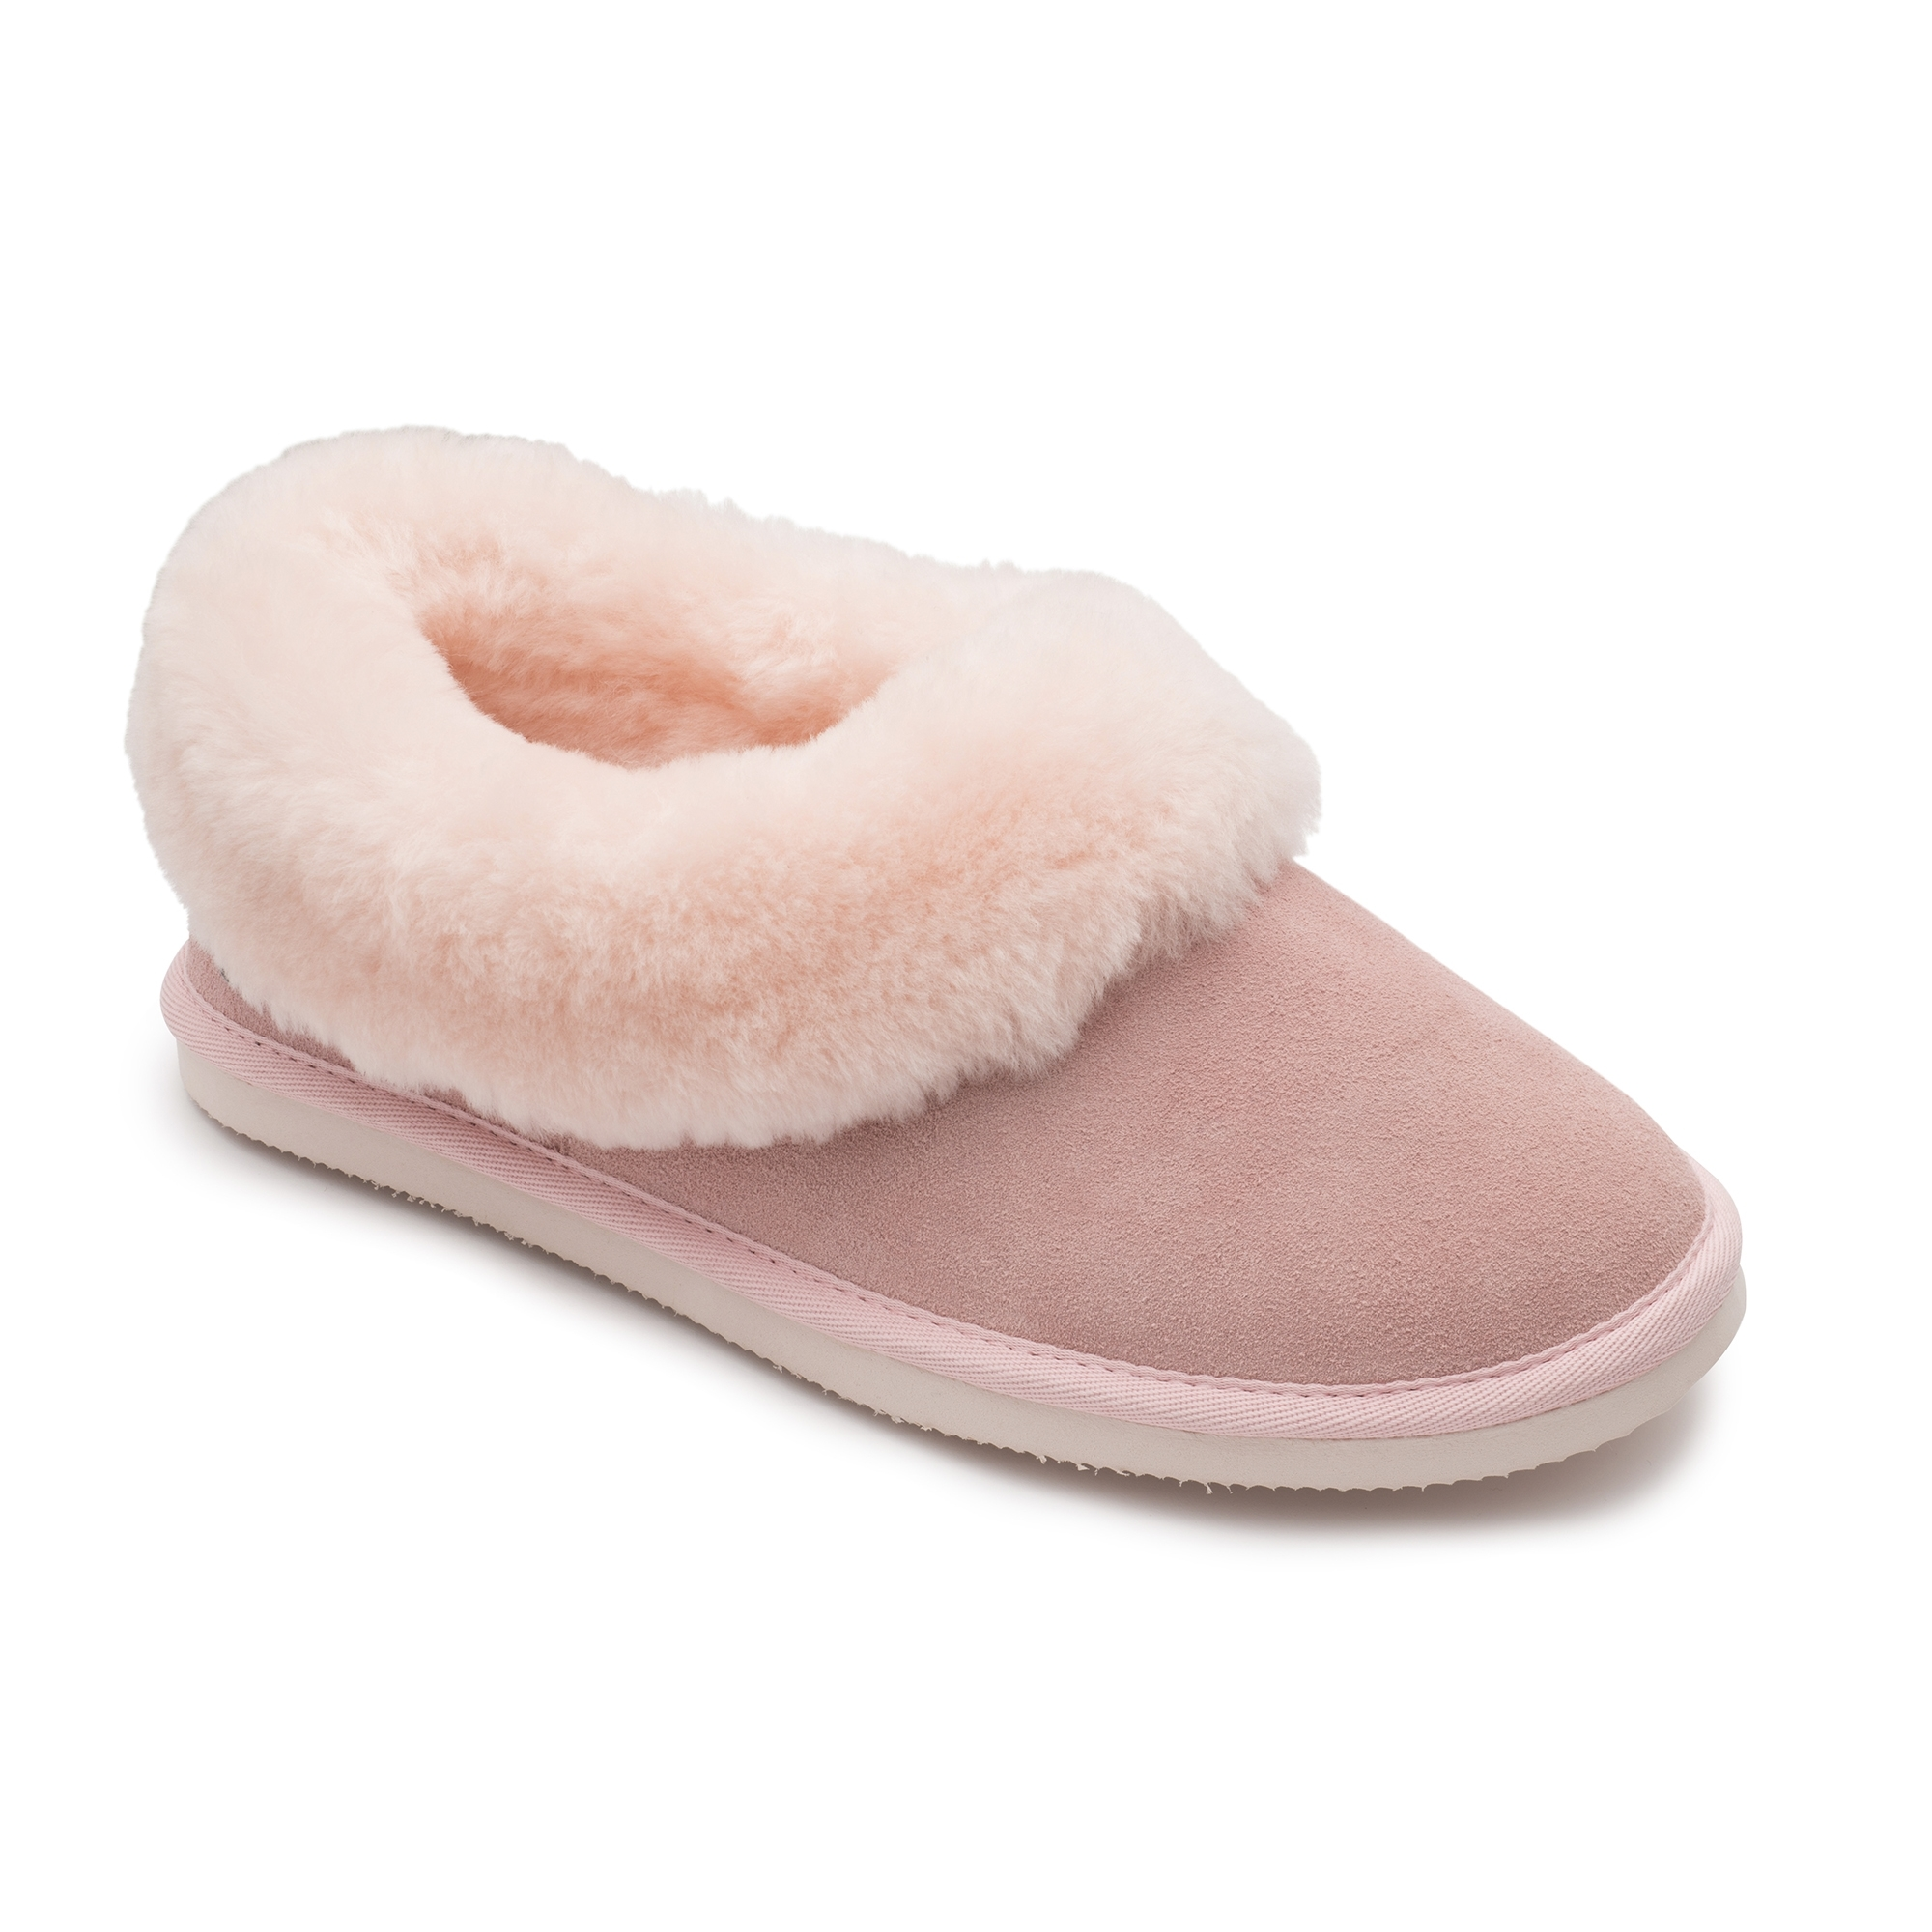 2E Fit Cuddle Ladies Padders Suede Slipper